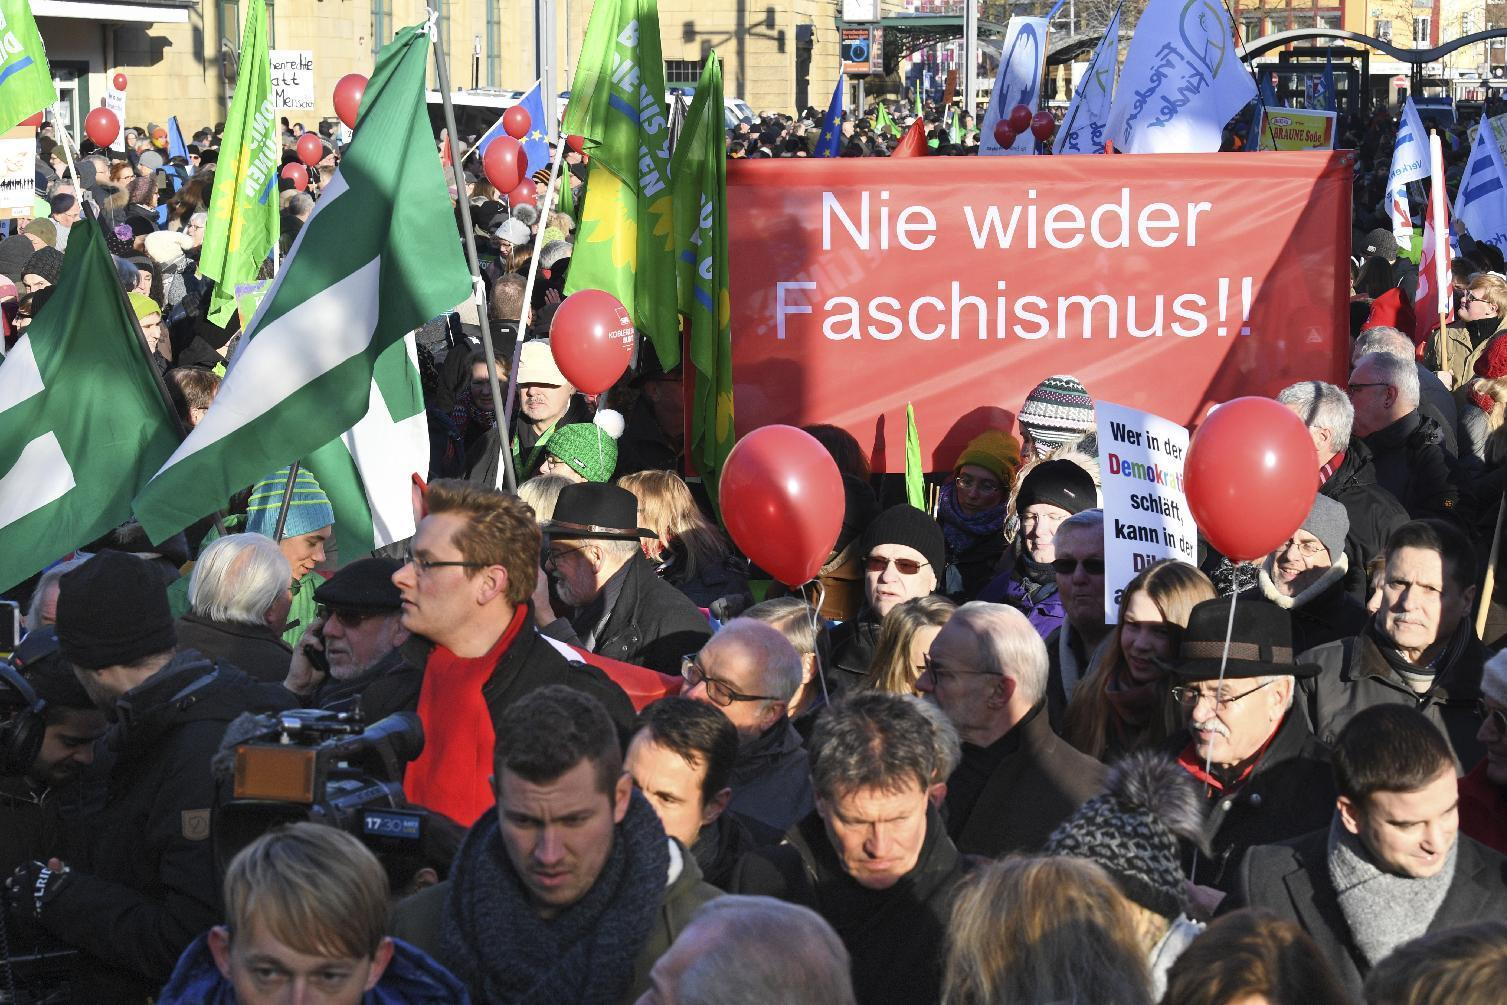 "People demonstrate against a meeting of European nationalists in Koblenz, Germany, Saturday, Jan. 21, 2017. Dutch populist anti-Islam lawmaker Geert Wilders, AfD (Alternative for Germany) chairwoman Frauke Petry, far-right leader and candidate for next spring presidential elections Marine le Pen from France and Italian Lega Nord chief Matteo Salvini will attend the meeting. Banner reads ""Never again Fascism"". (Boris Roessler/dpa via AP)"